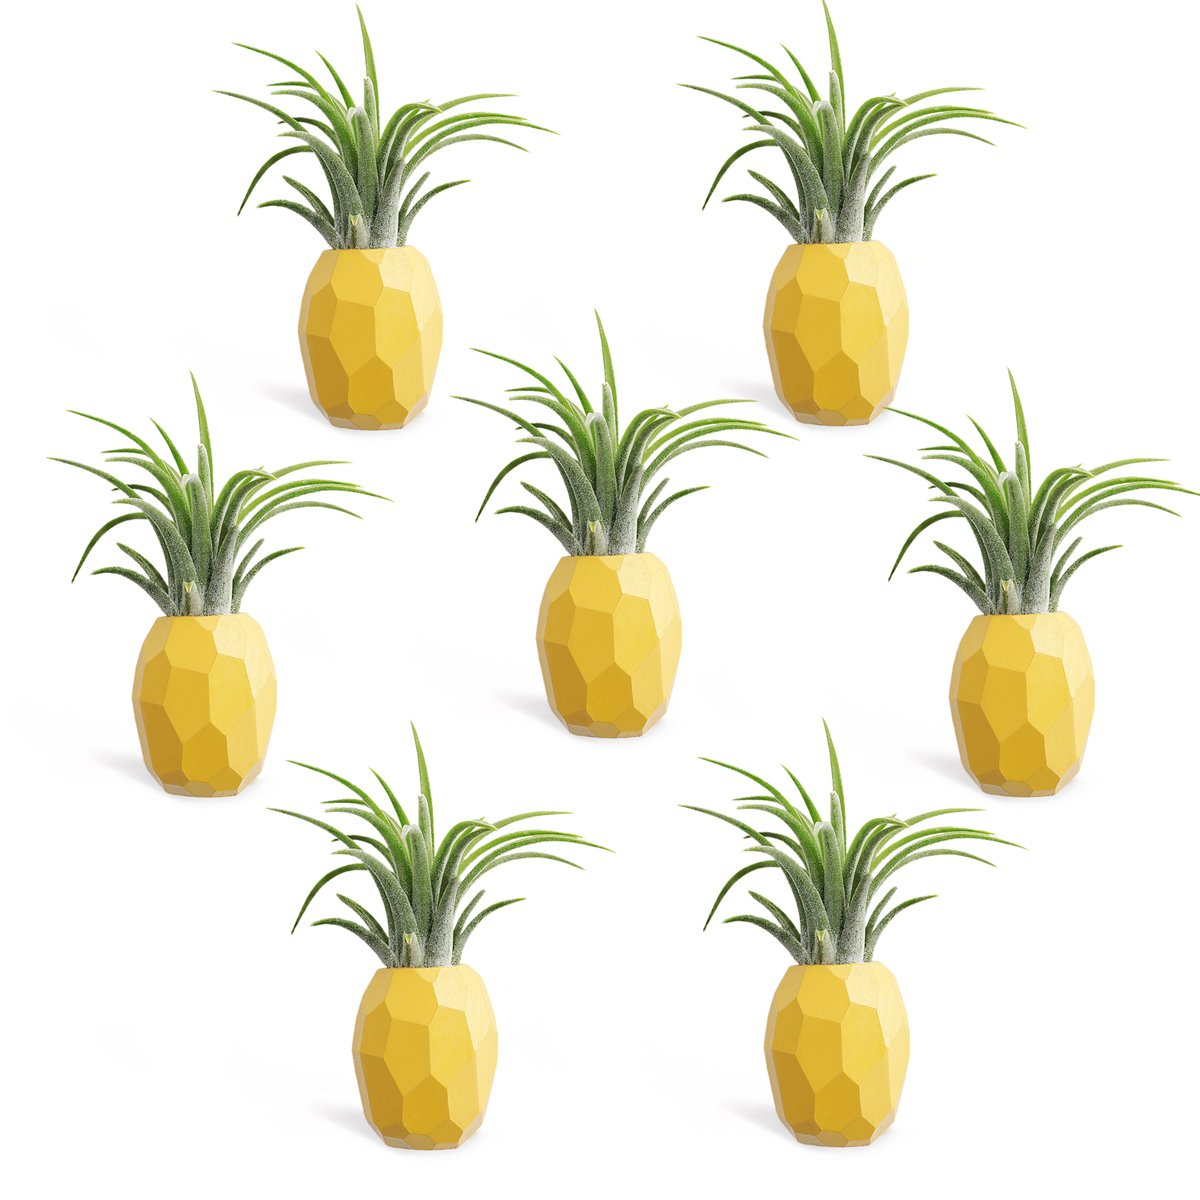 Air Plant Holder,Hanging Air Plant Holders,7 Pack Pineapple Geometric Air Plant Holder Container with Magnet for Hanging Small Air Plants Tillandsia Indoor Wall Home Decor